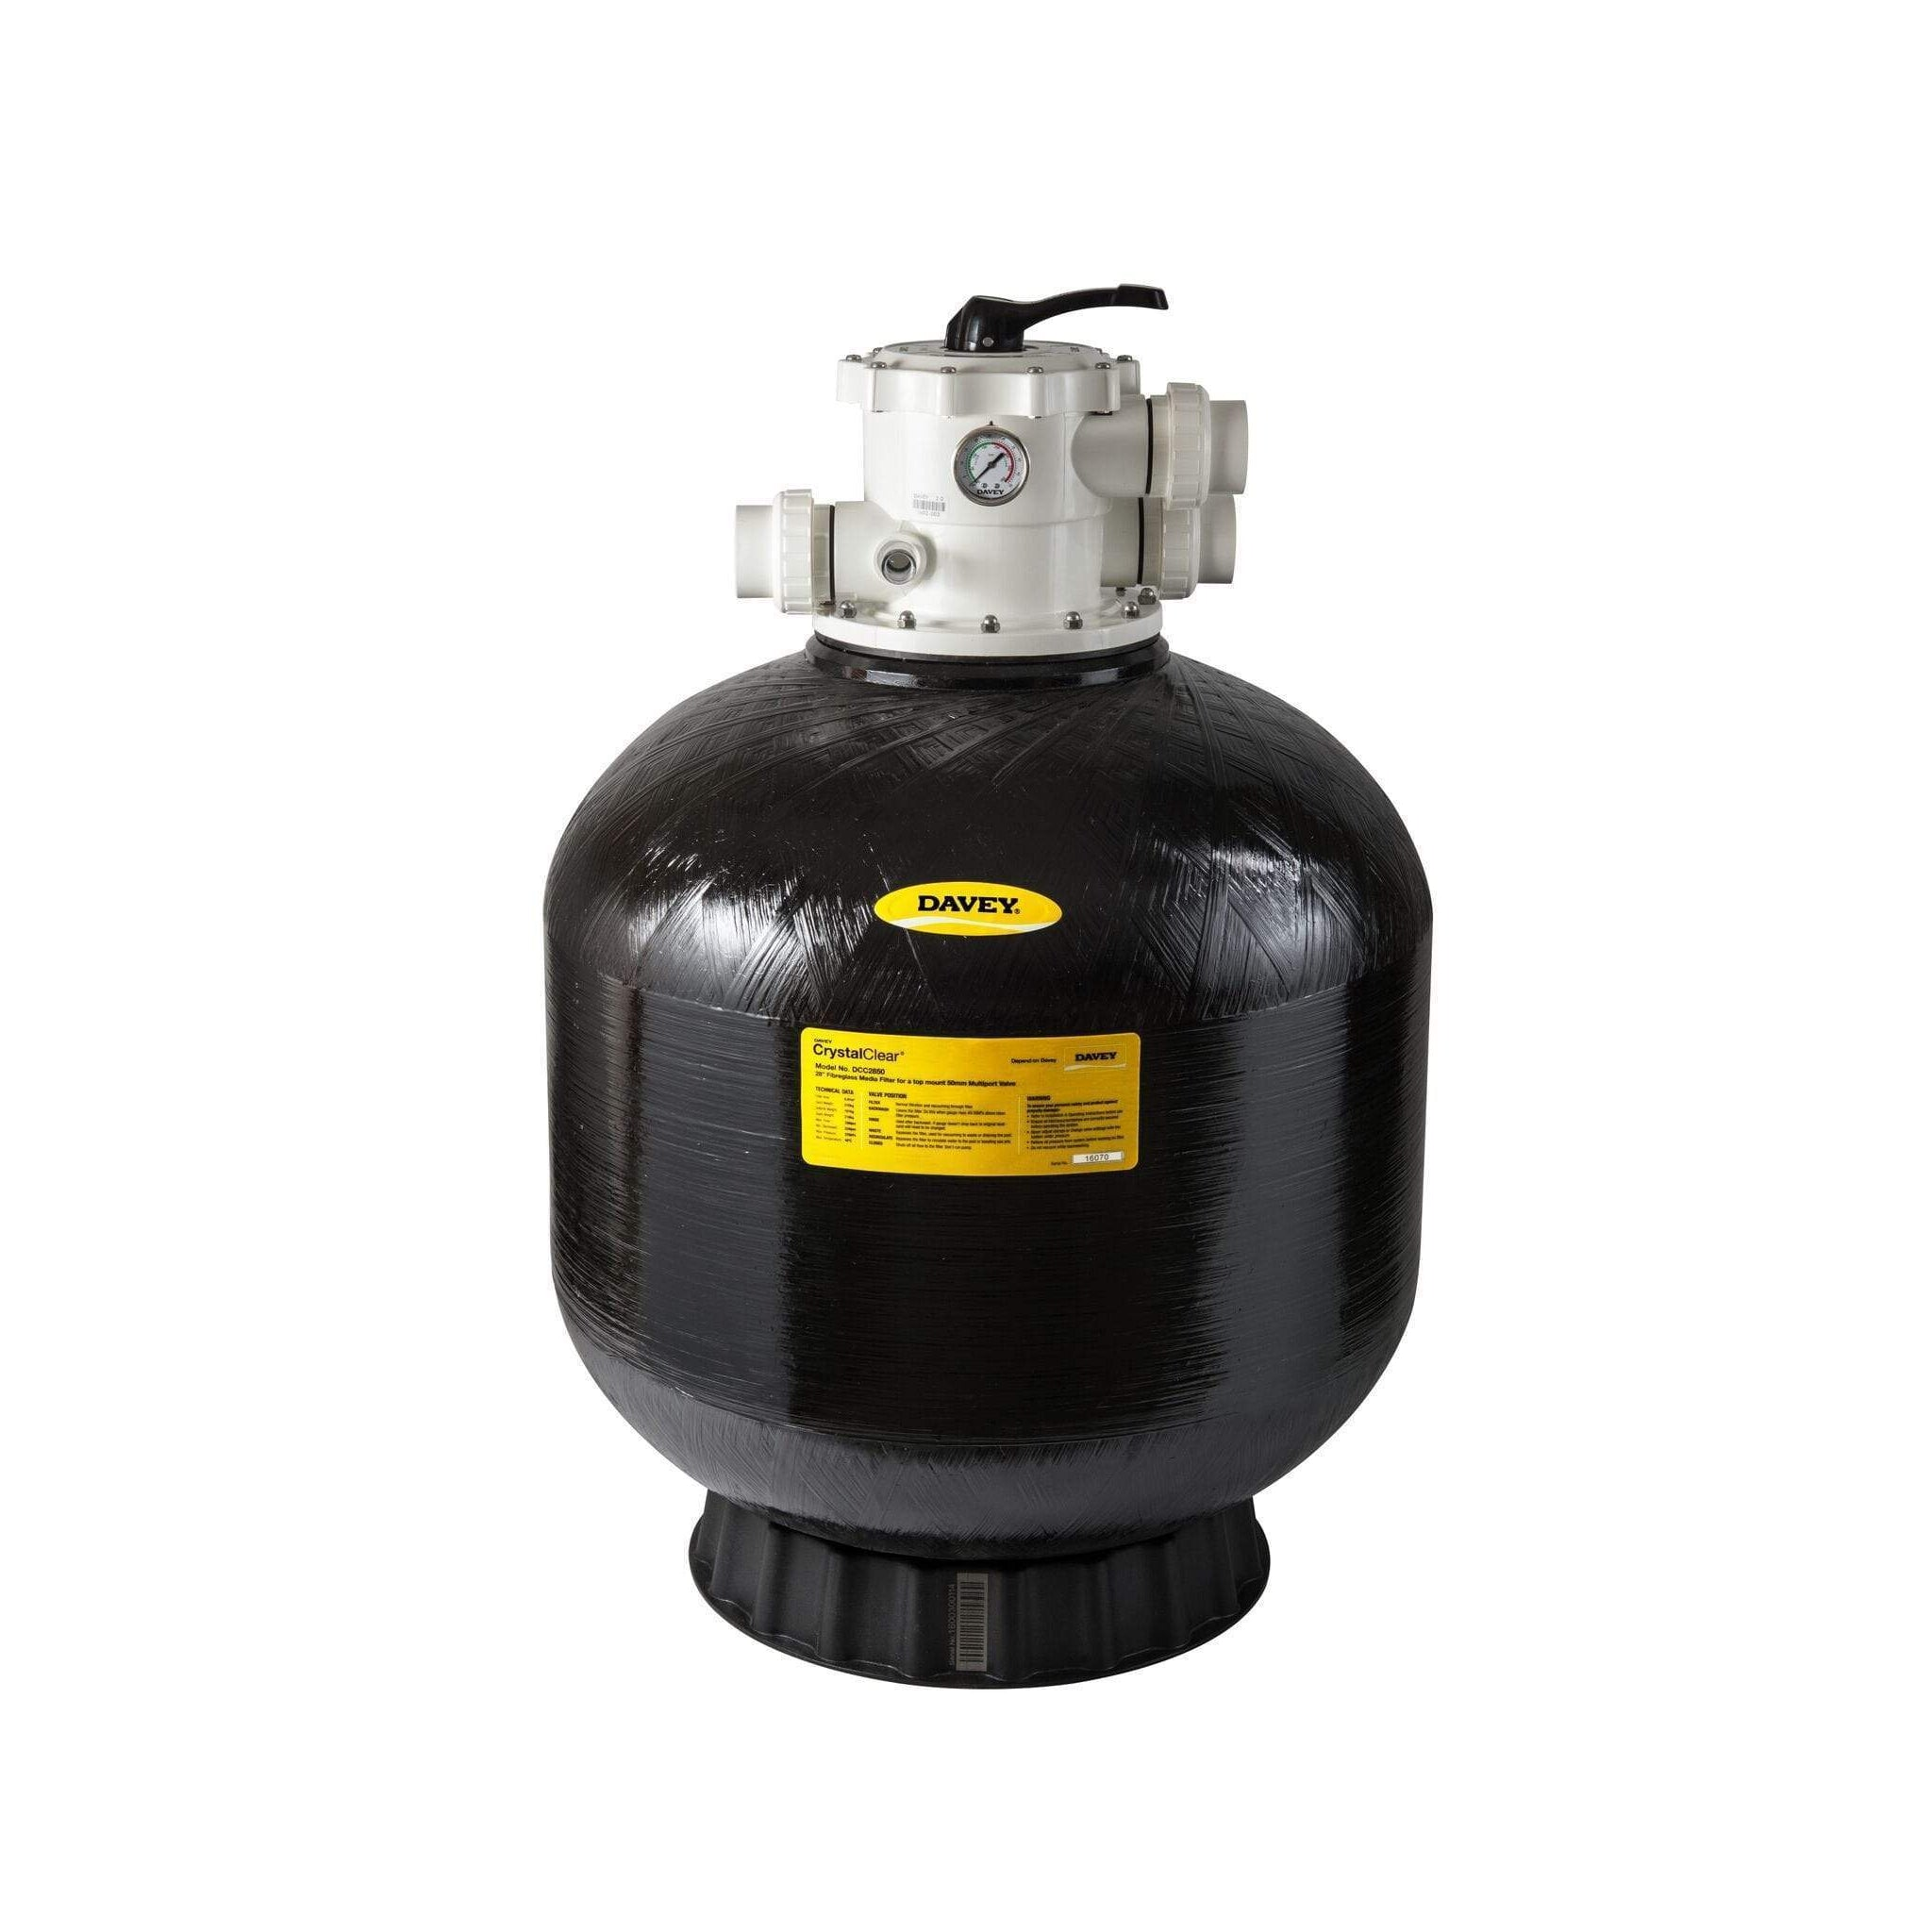 Davey Sand Filter Crystal Clear CCF 25inch 40mm-Mr Pool Man